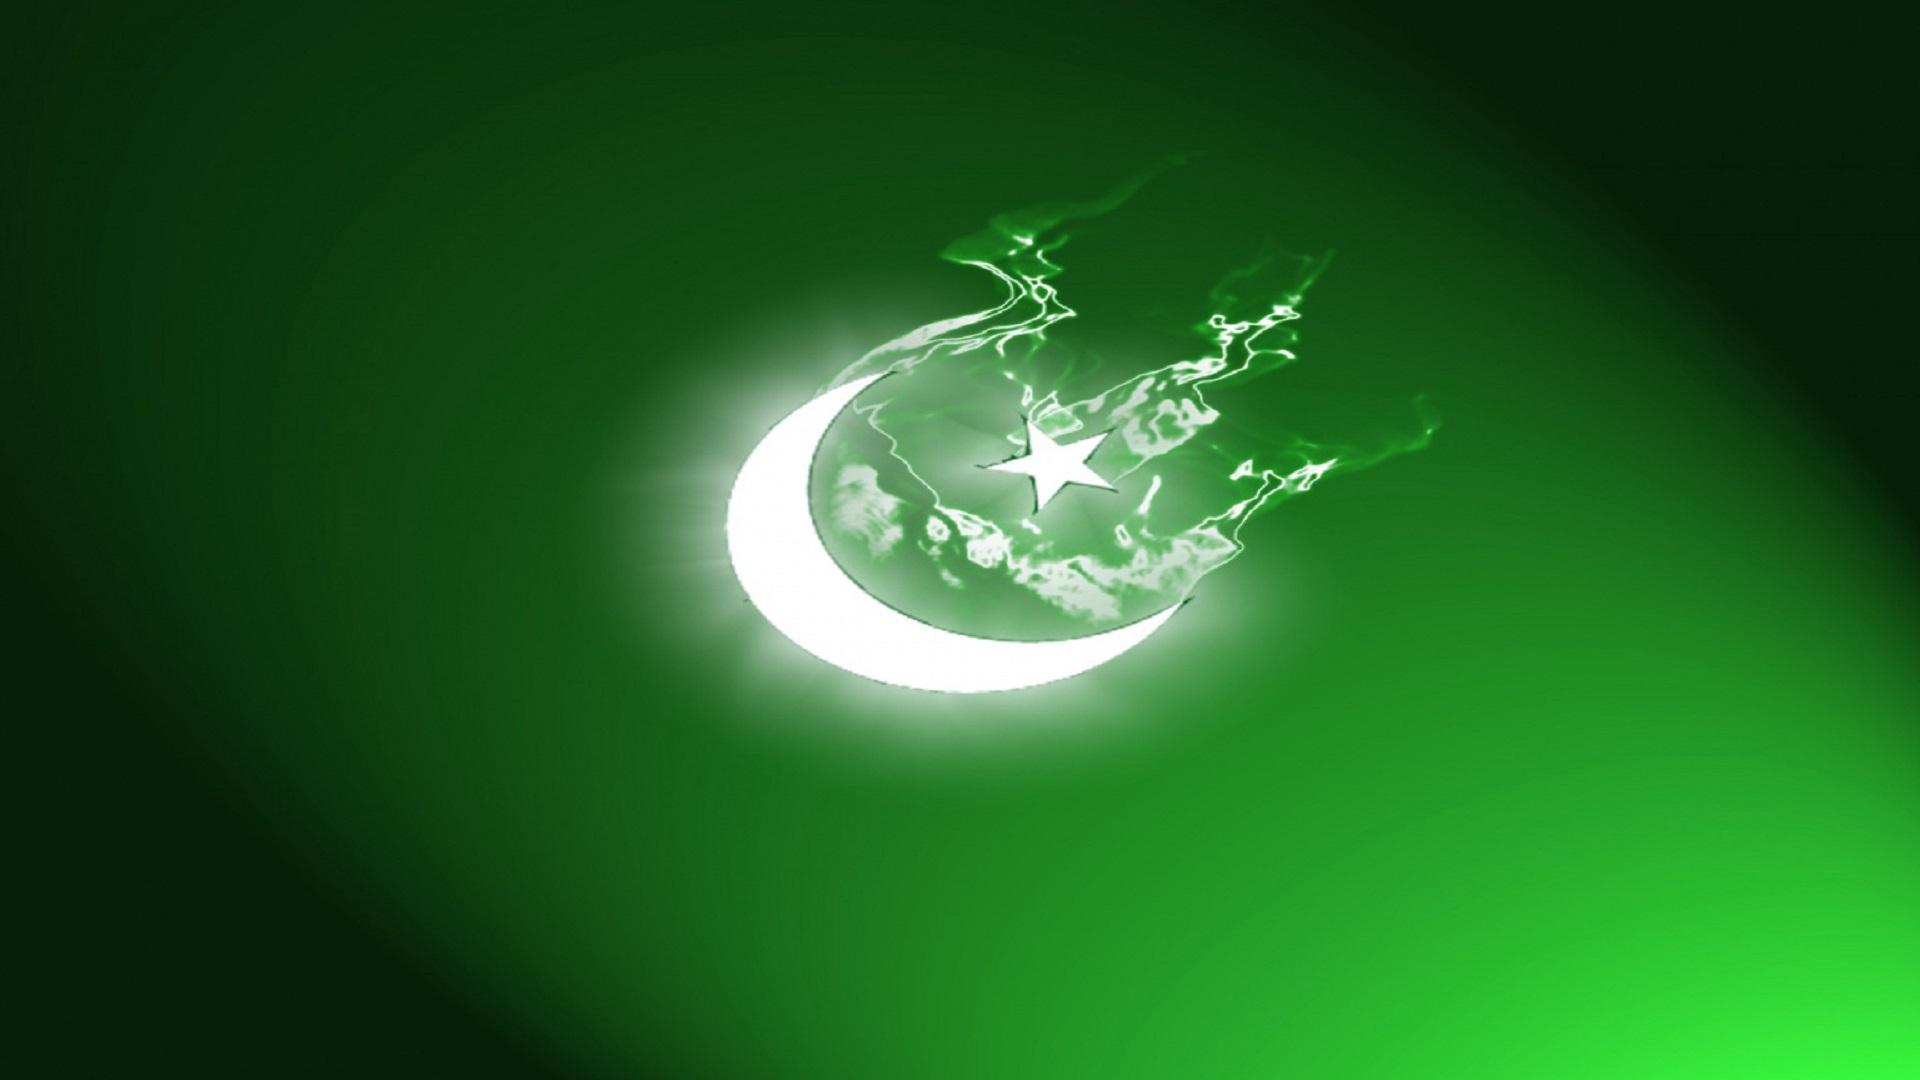 animated-flag-free-hd-wallpapers-top-pakistani